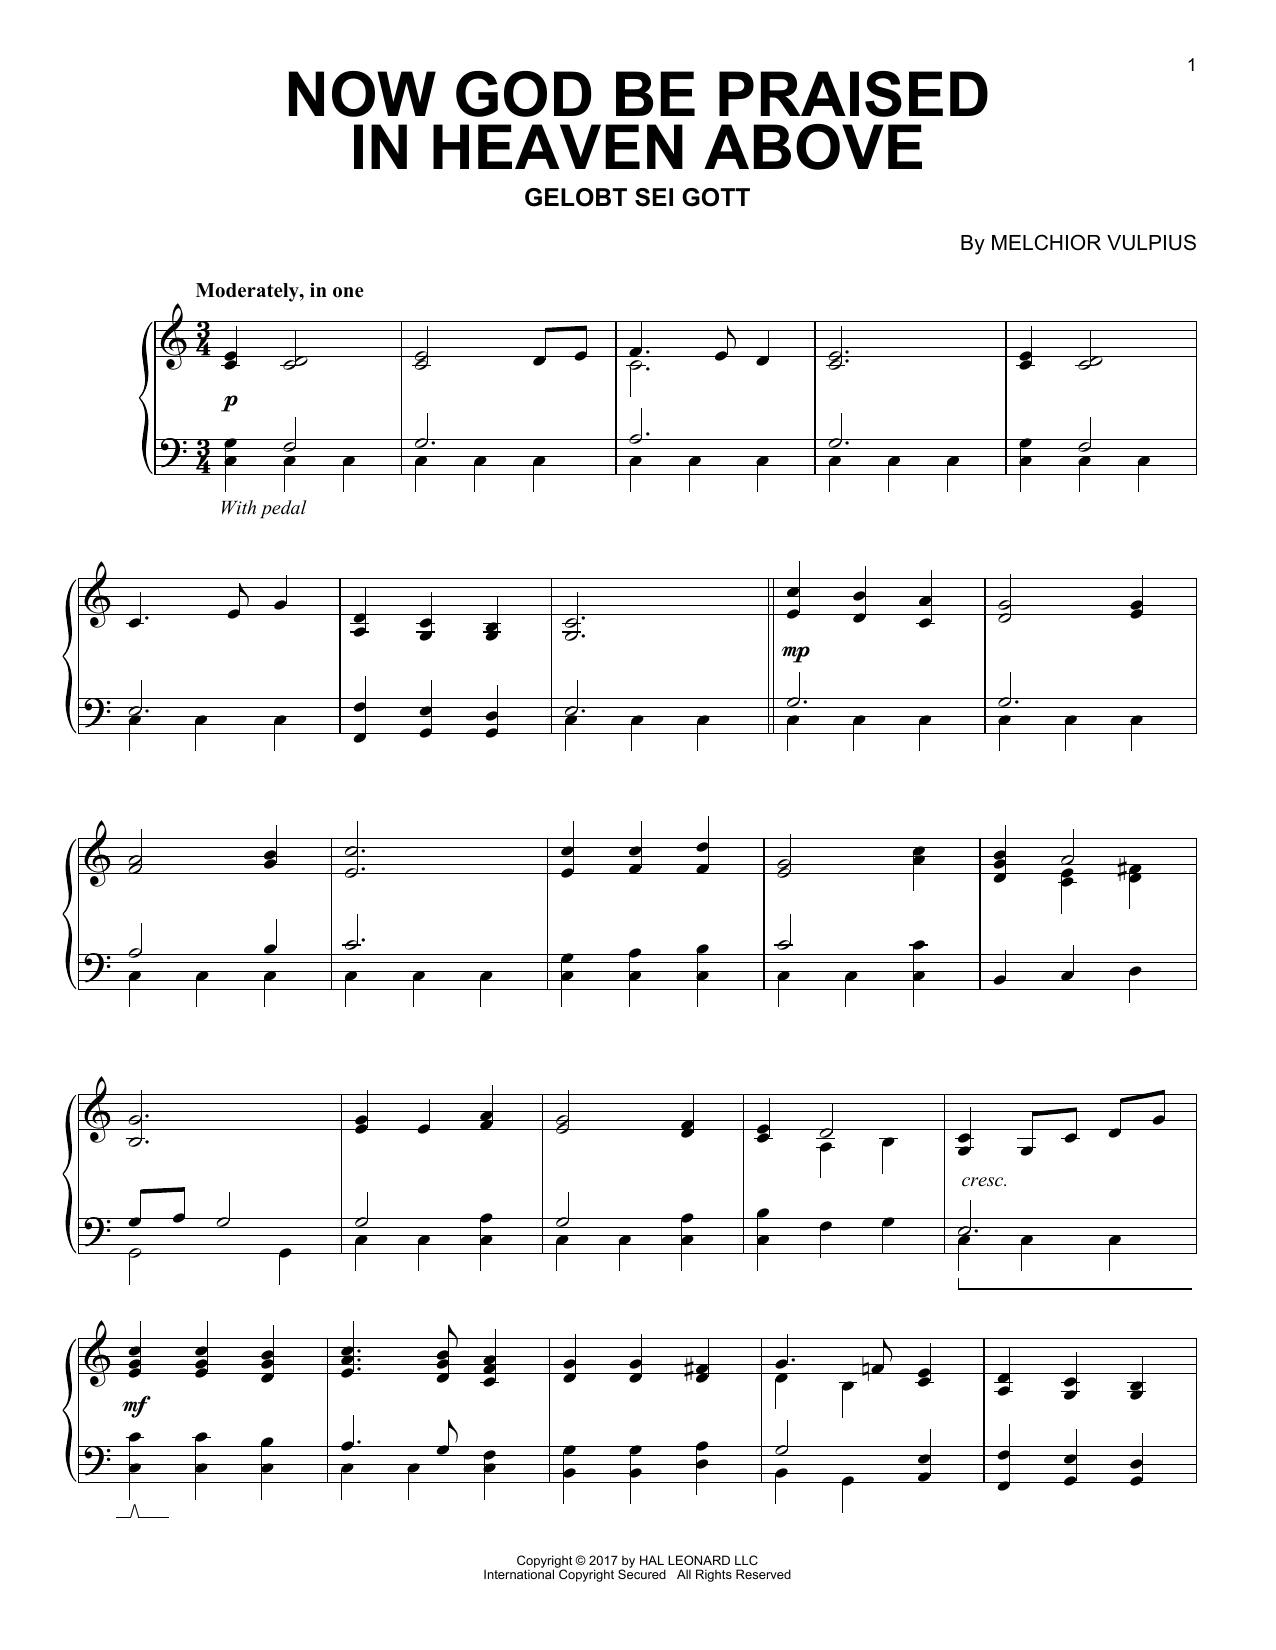 Download Melchior Vulpius 'Now God Be Praised In Heaven Above' Digital Sheet Music Notes & Chords and start playing in minutes